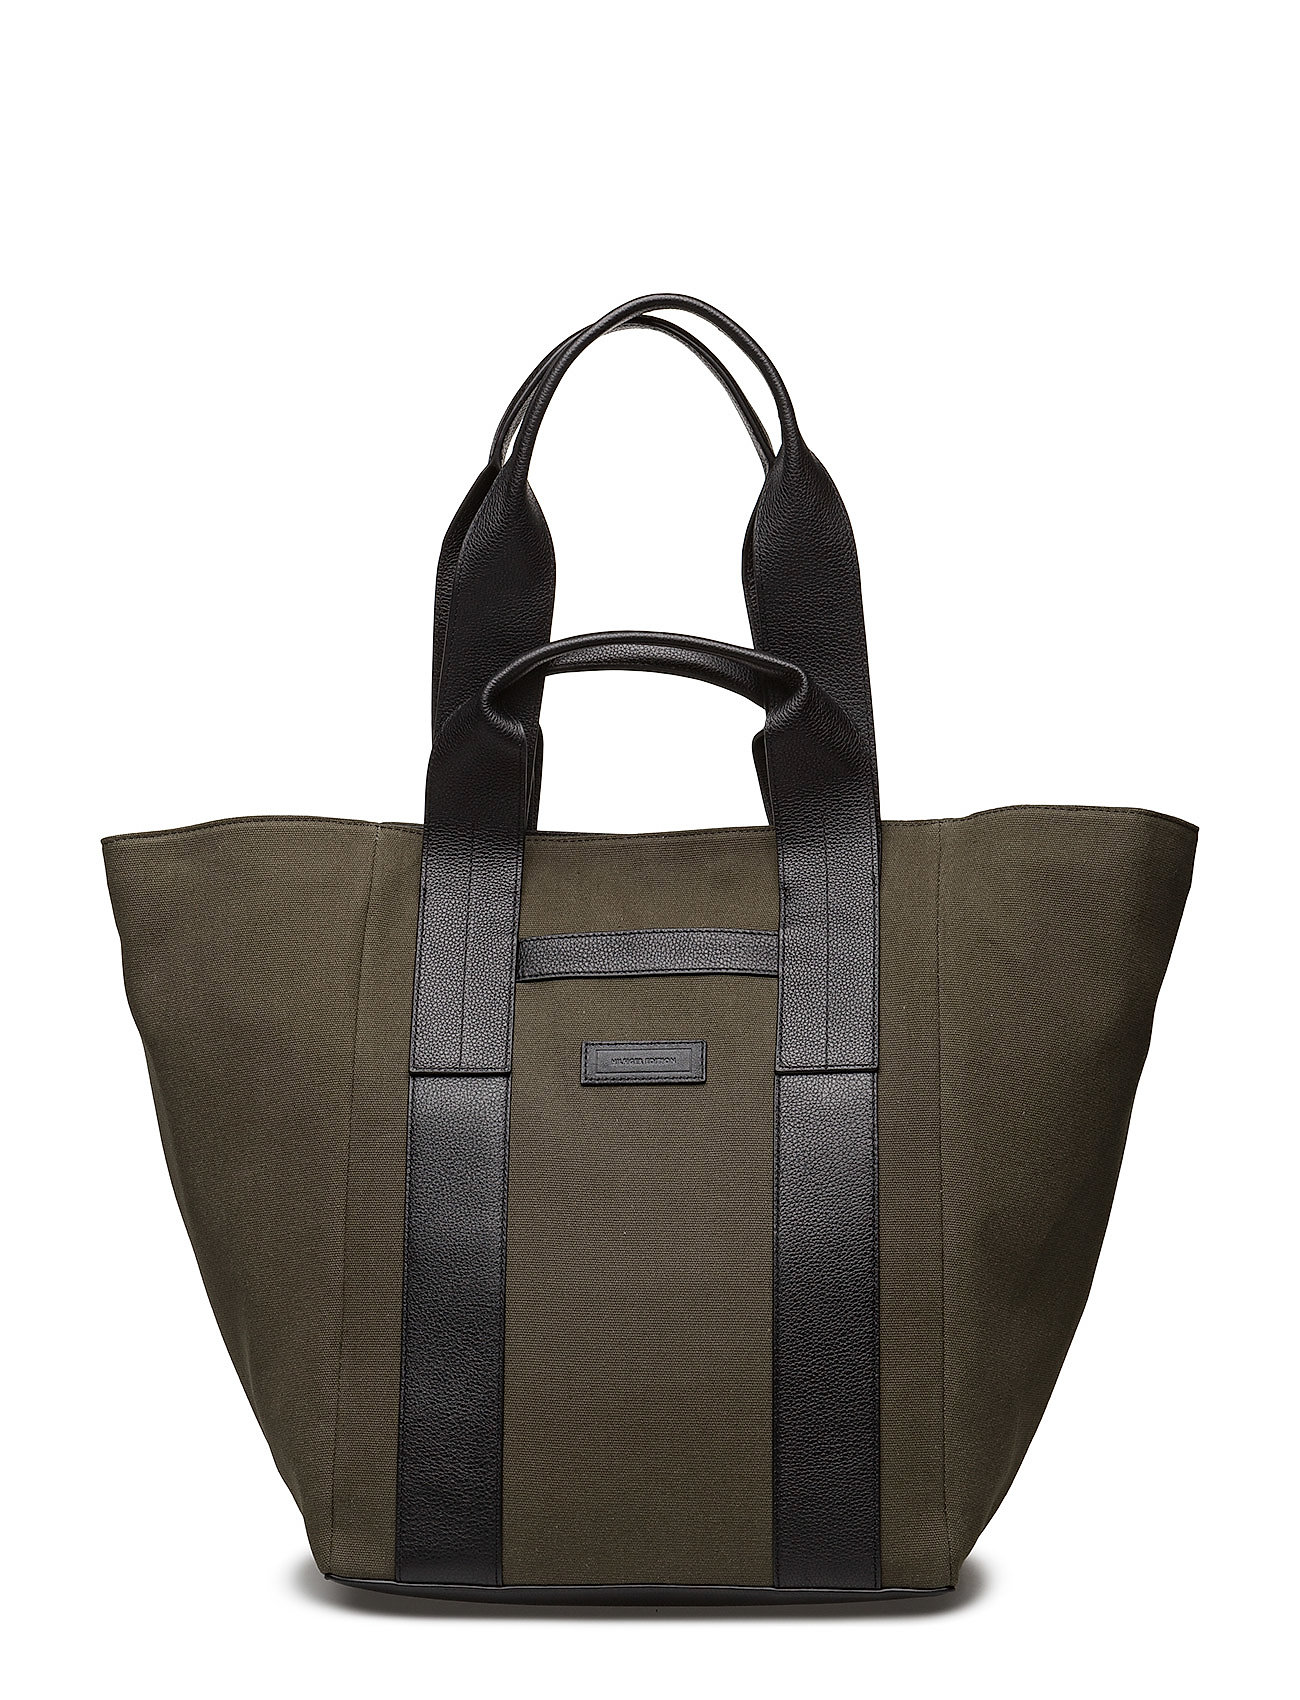 Tommy Hilfiger TH EDITION TOTE - GREEN / BLACK